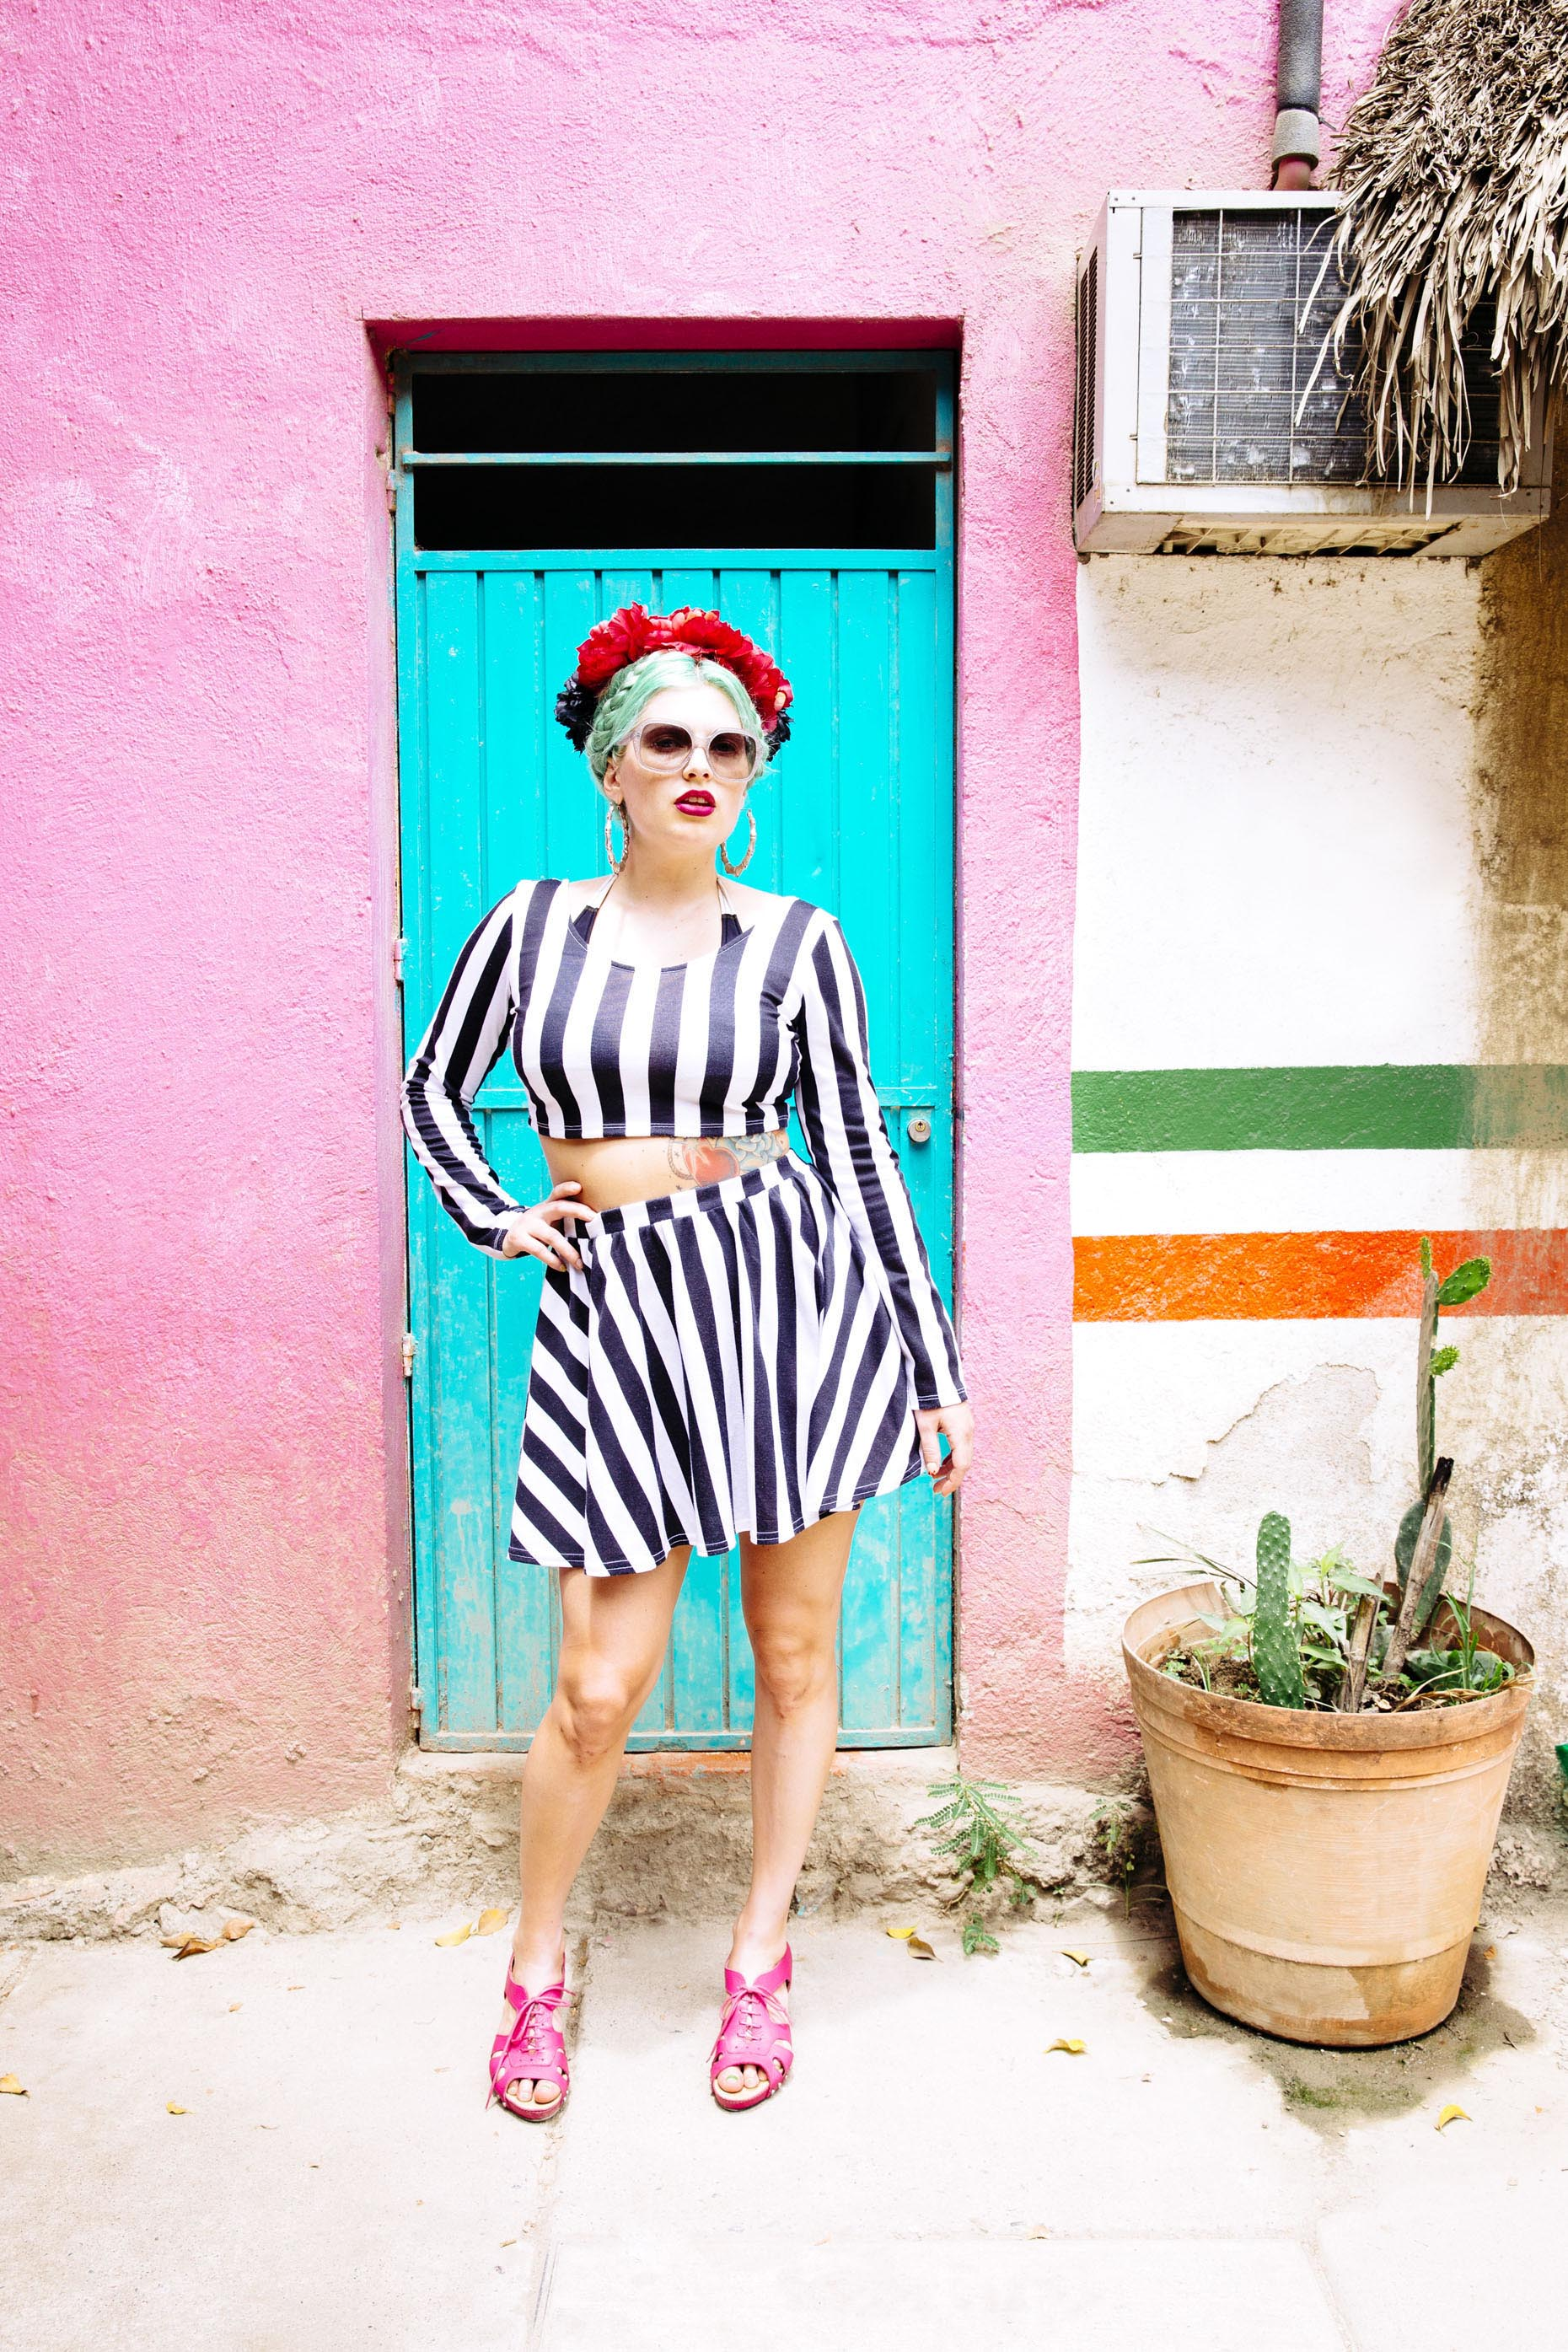 Portrait-woman-black-white-striped-dress-flowers-pinkwall-blue-door-Inti-St-Clair-is201404090189